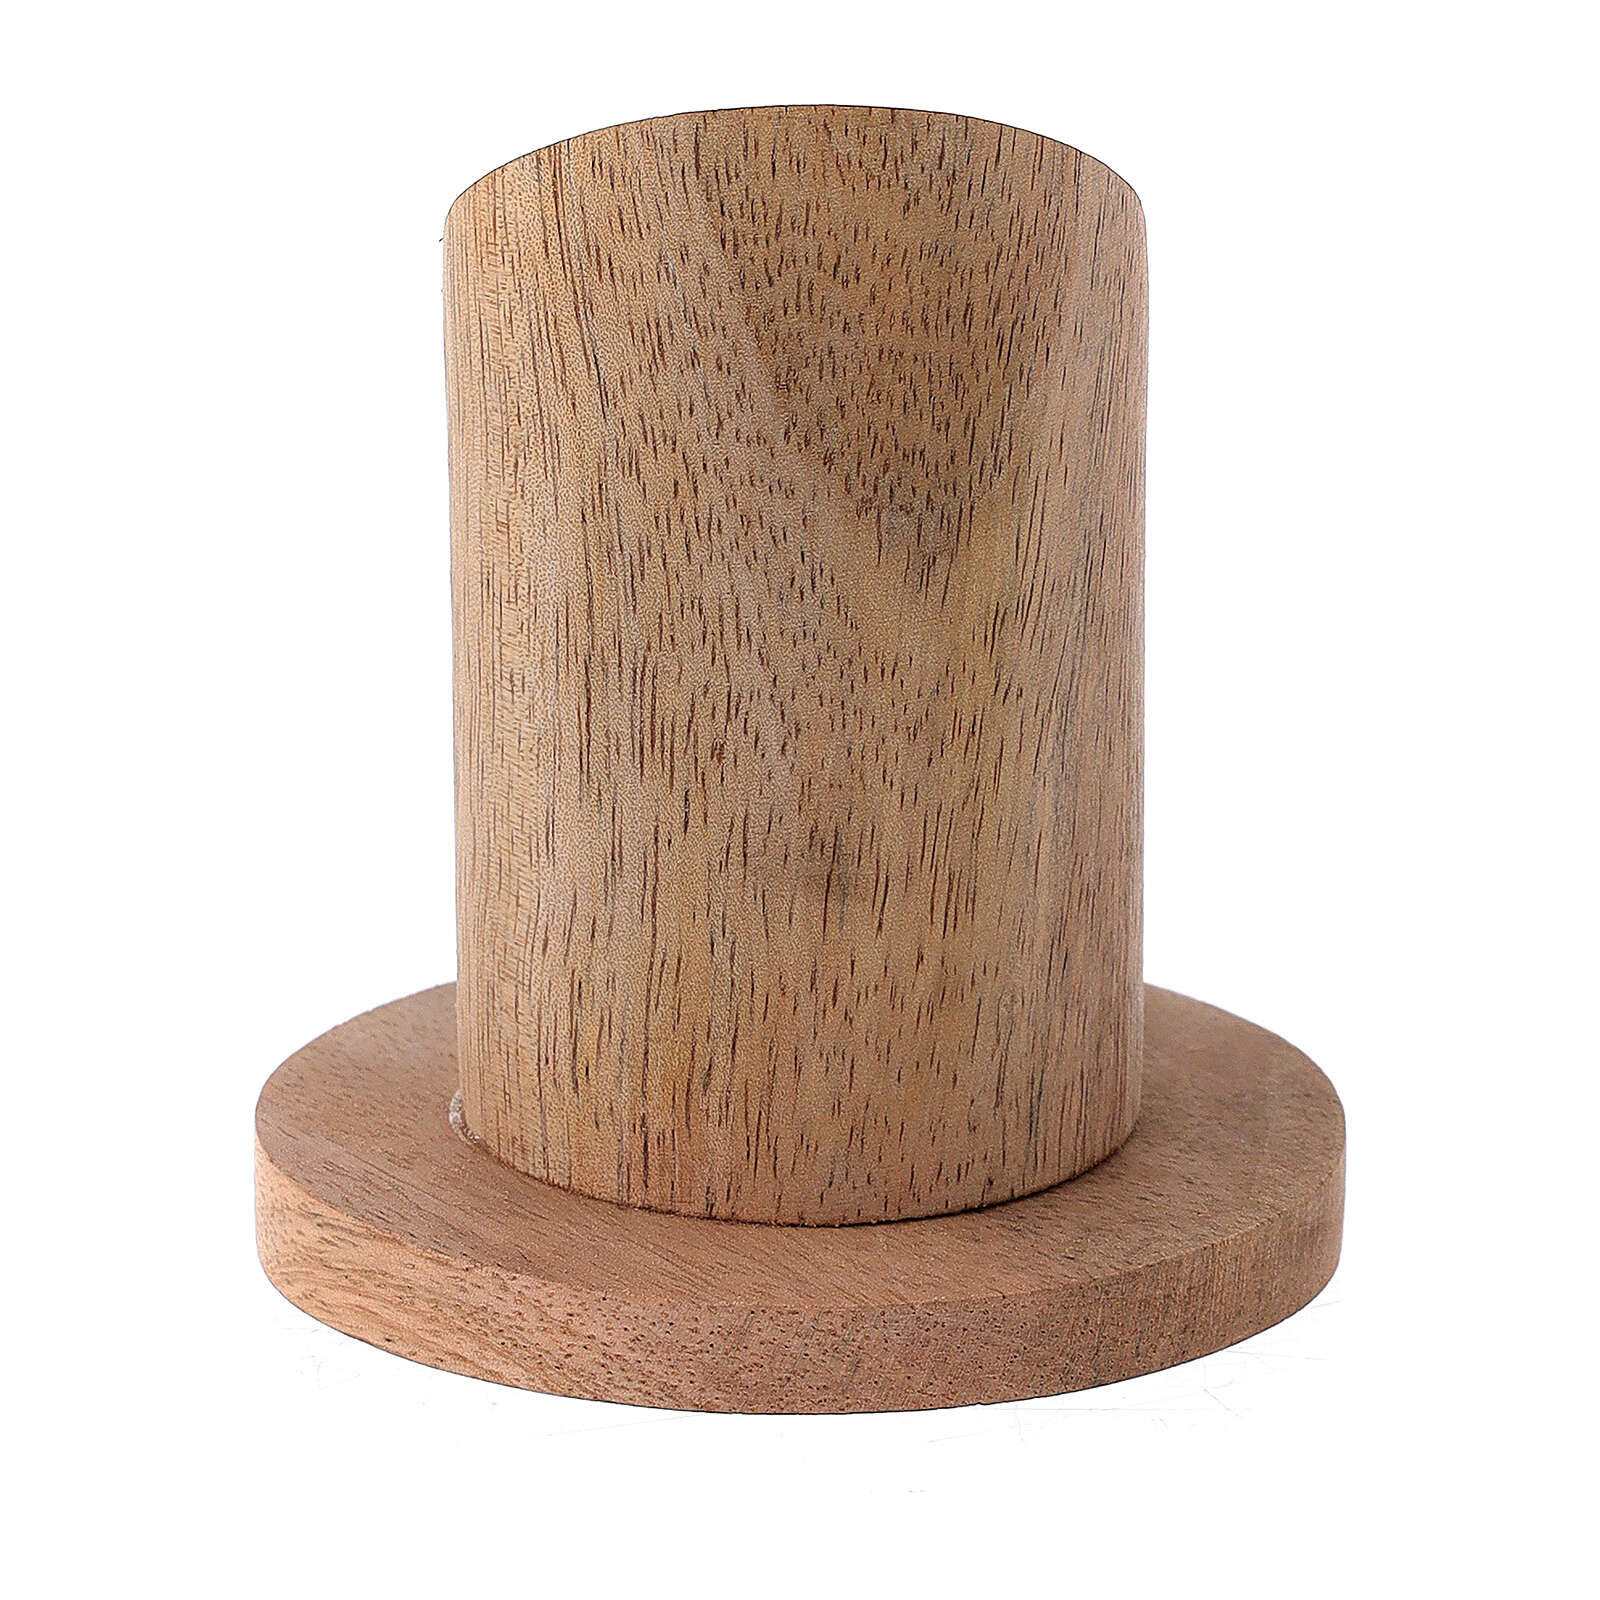 Natural mango wood candle holder 1 1/4 in 3